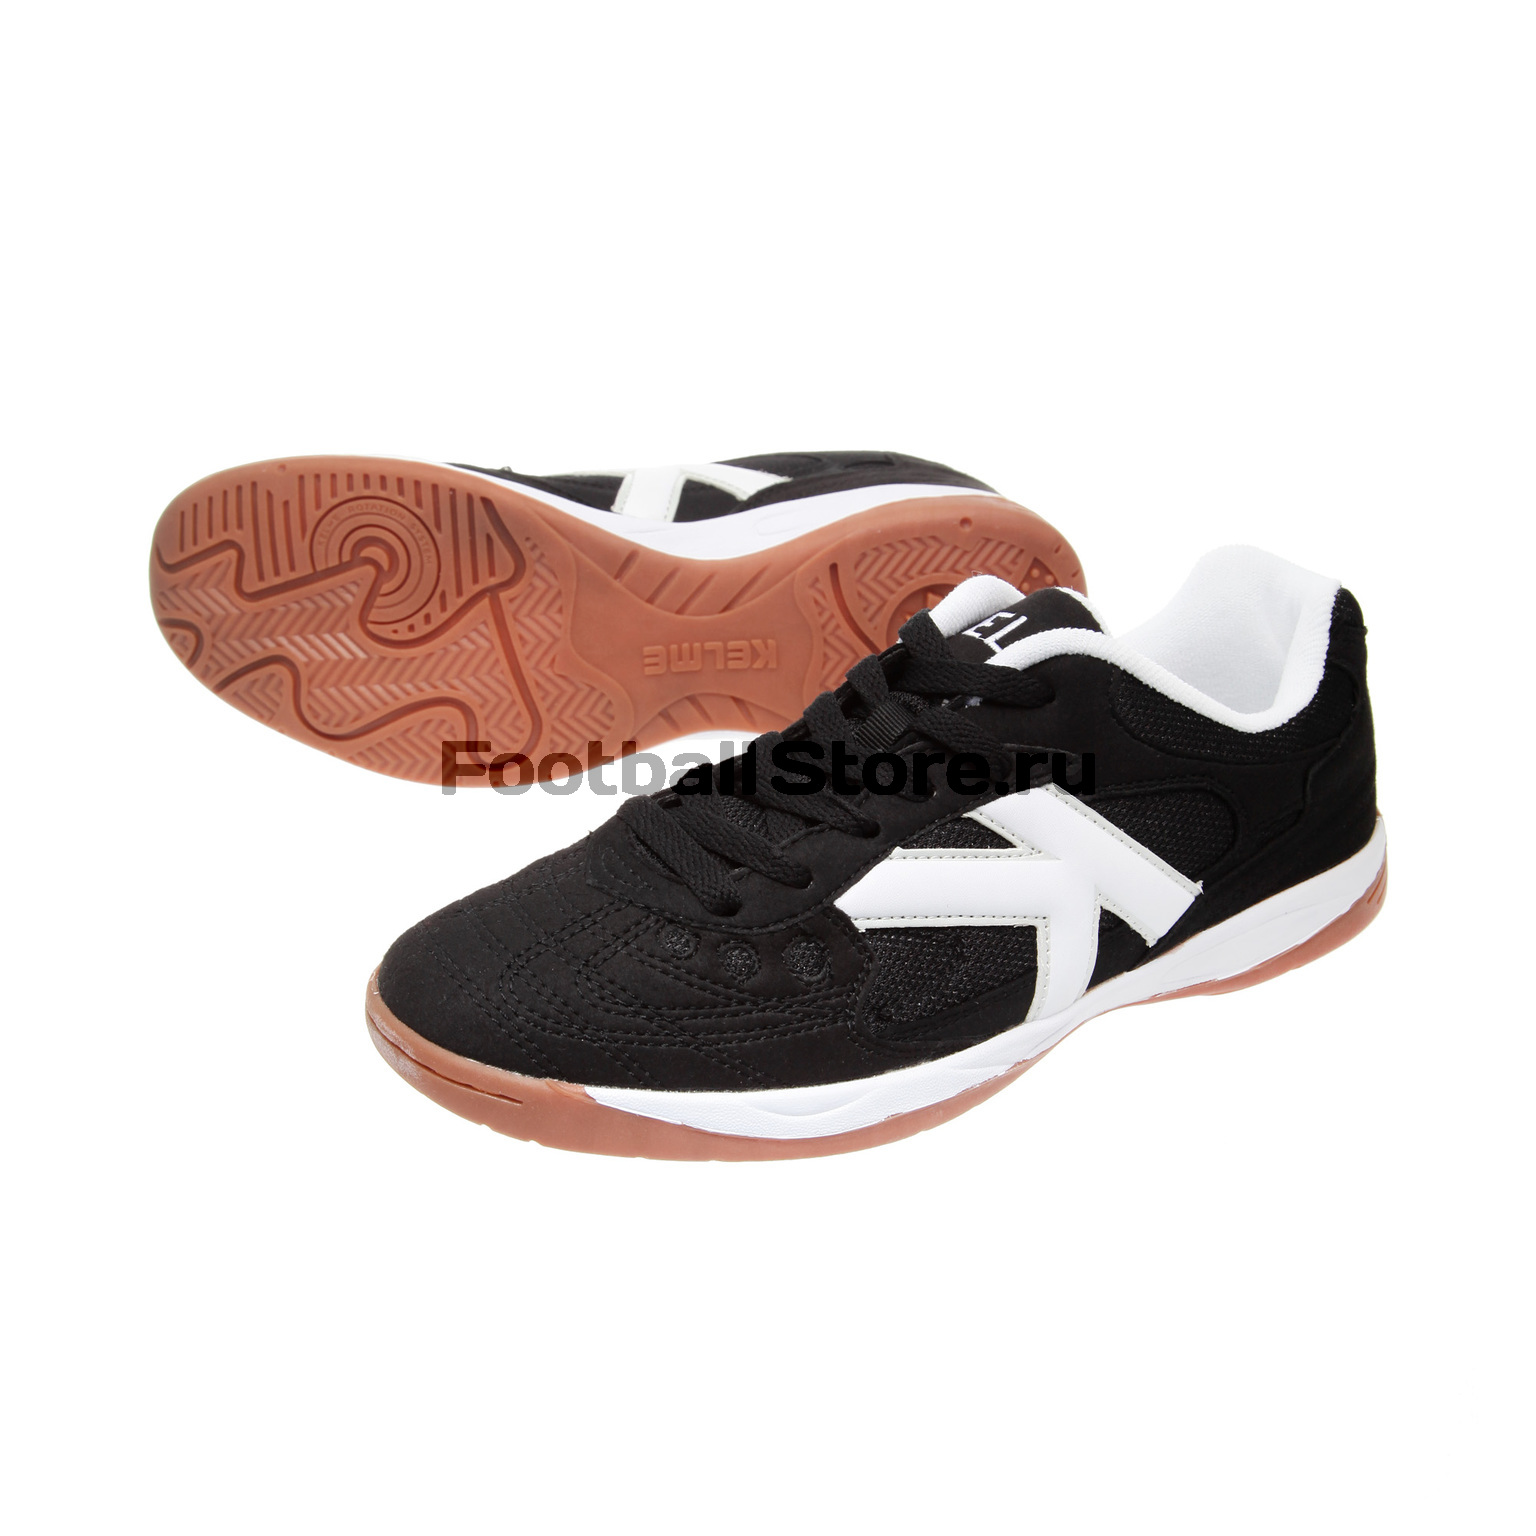 Футзалки Kelme Indoor Copa 55257-026